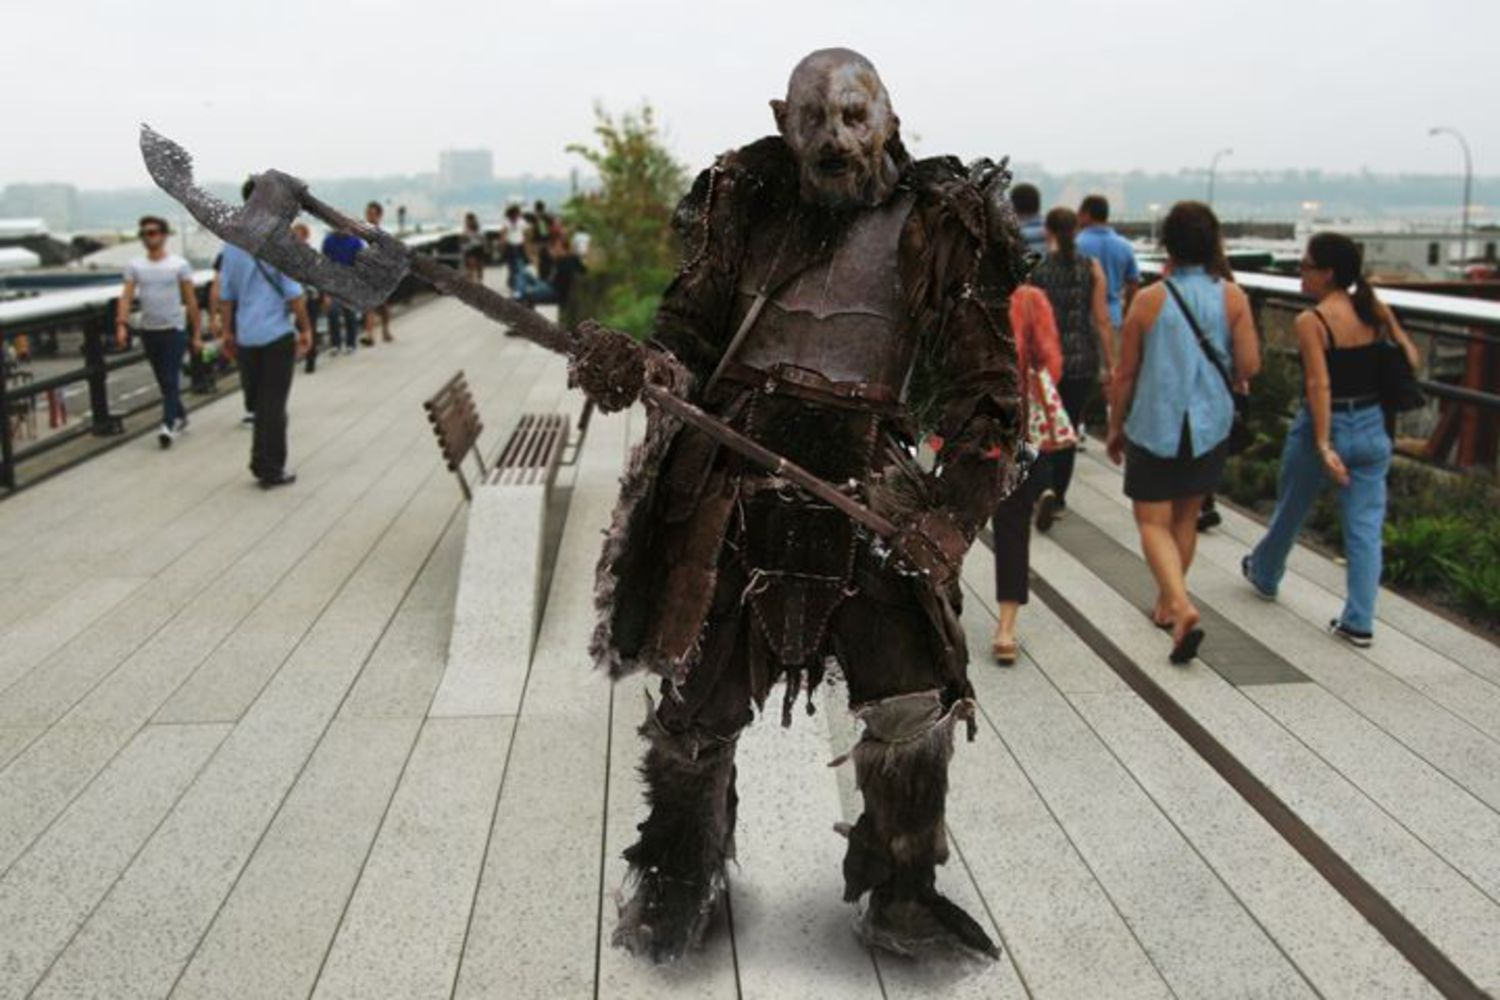 """I was born and raised in the Bronx. I don't really feel much connection with Mordor. It's hard, my parents don't talk about it much. You hear a lot about orcish refugees coming here after the War of the Ring - some humans, too, actually, who fought with the Dark Lord - but orcs have been coming here a long time to get out of the rigid caste structure. My parents were snaga, a low caste. So they don't really talk about it."""